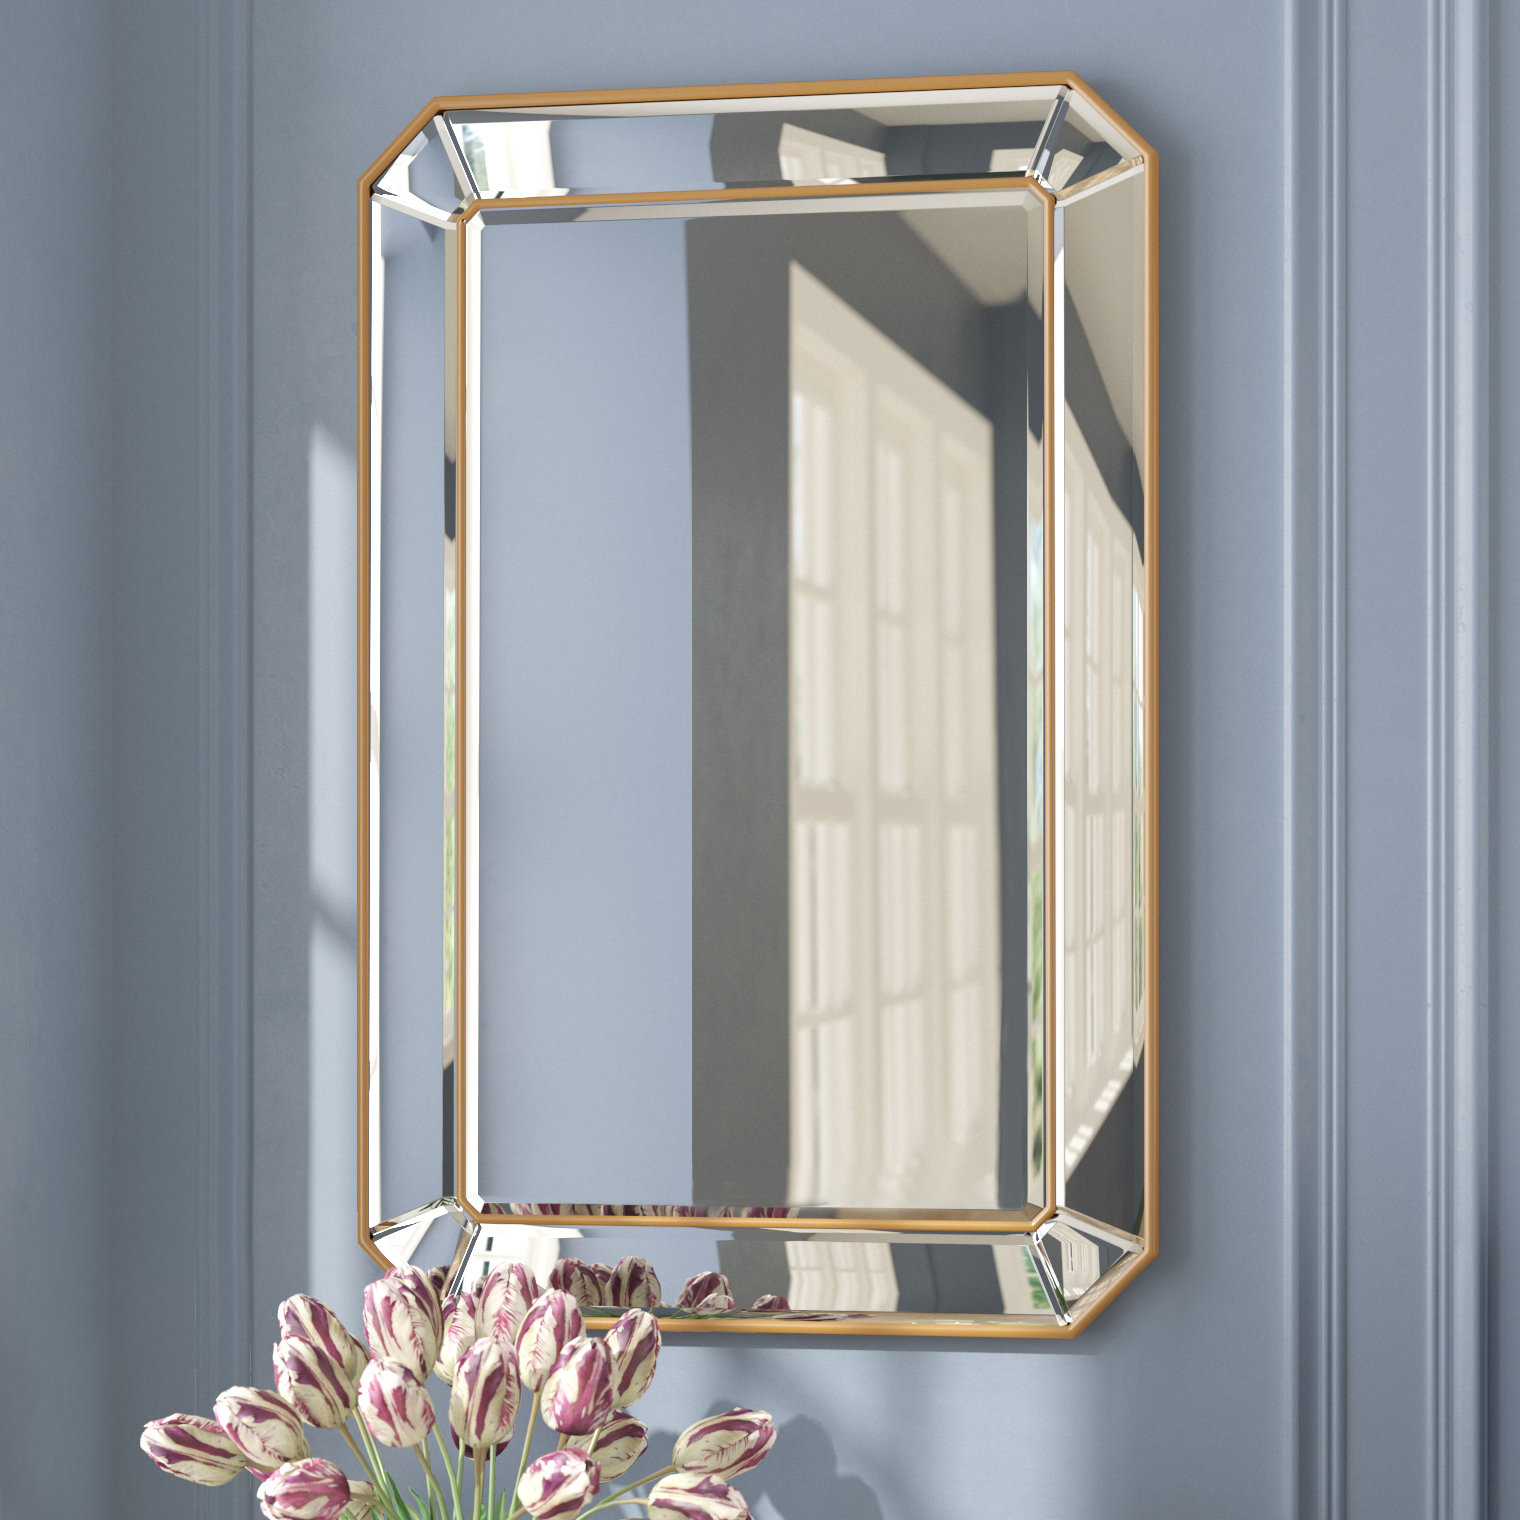 Broadmeadow Accent Wall Mirror | Wayfair With Regard To Tellier Accent Wall Mirrors (Image 6 of 20)